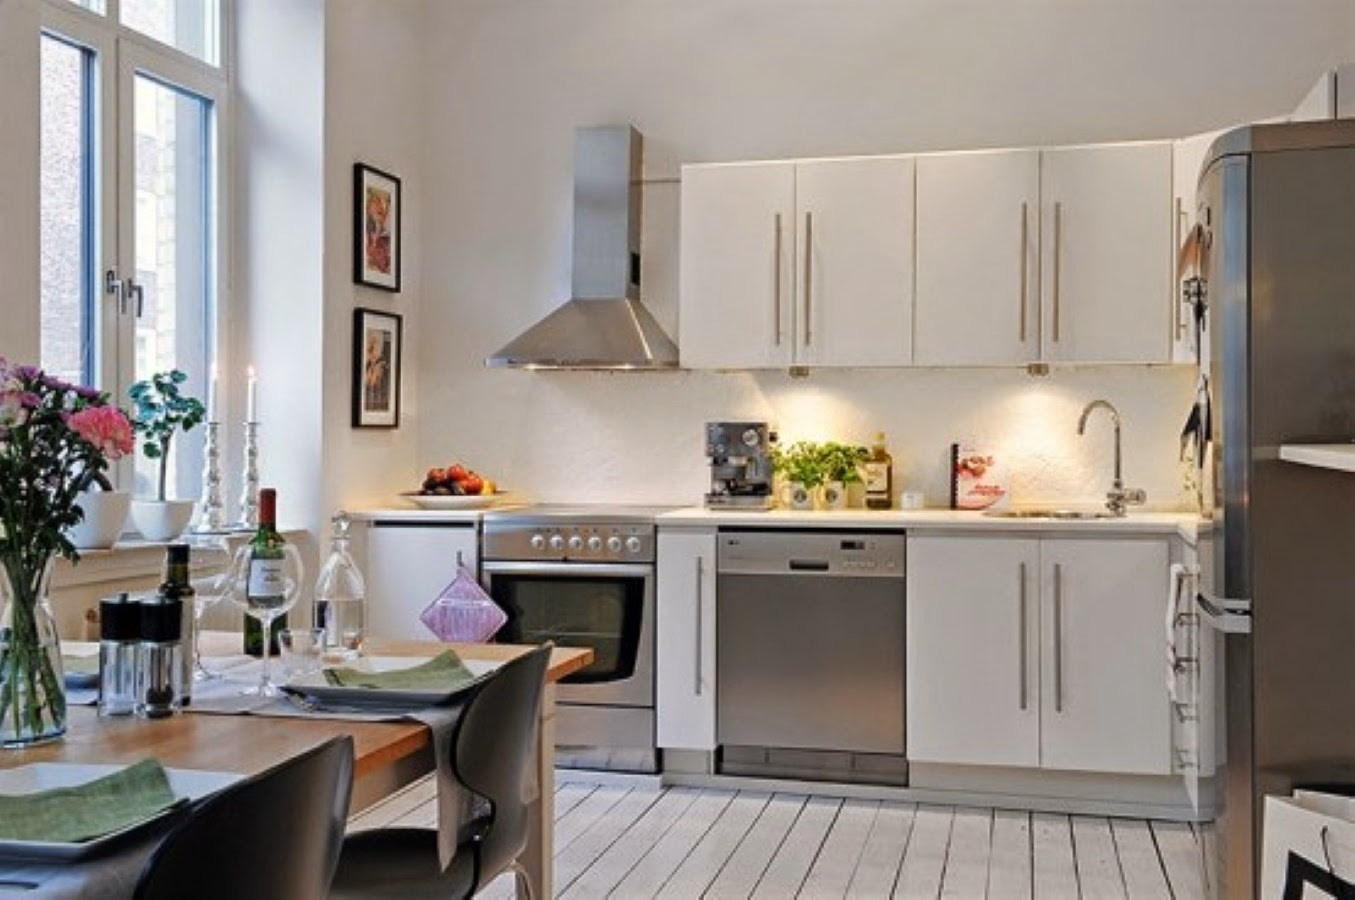 Small Apartment Kitchen Appliances Winda 7 Furniture Black And White Decorating Ideas